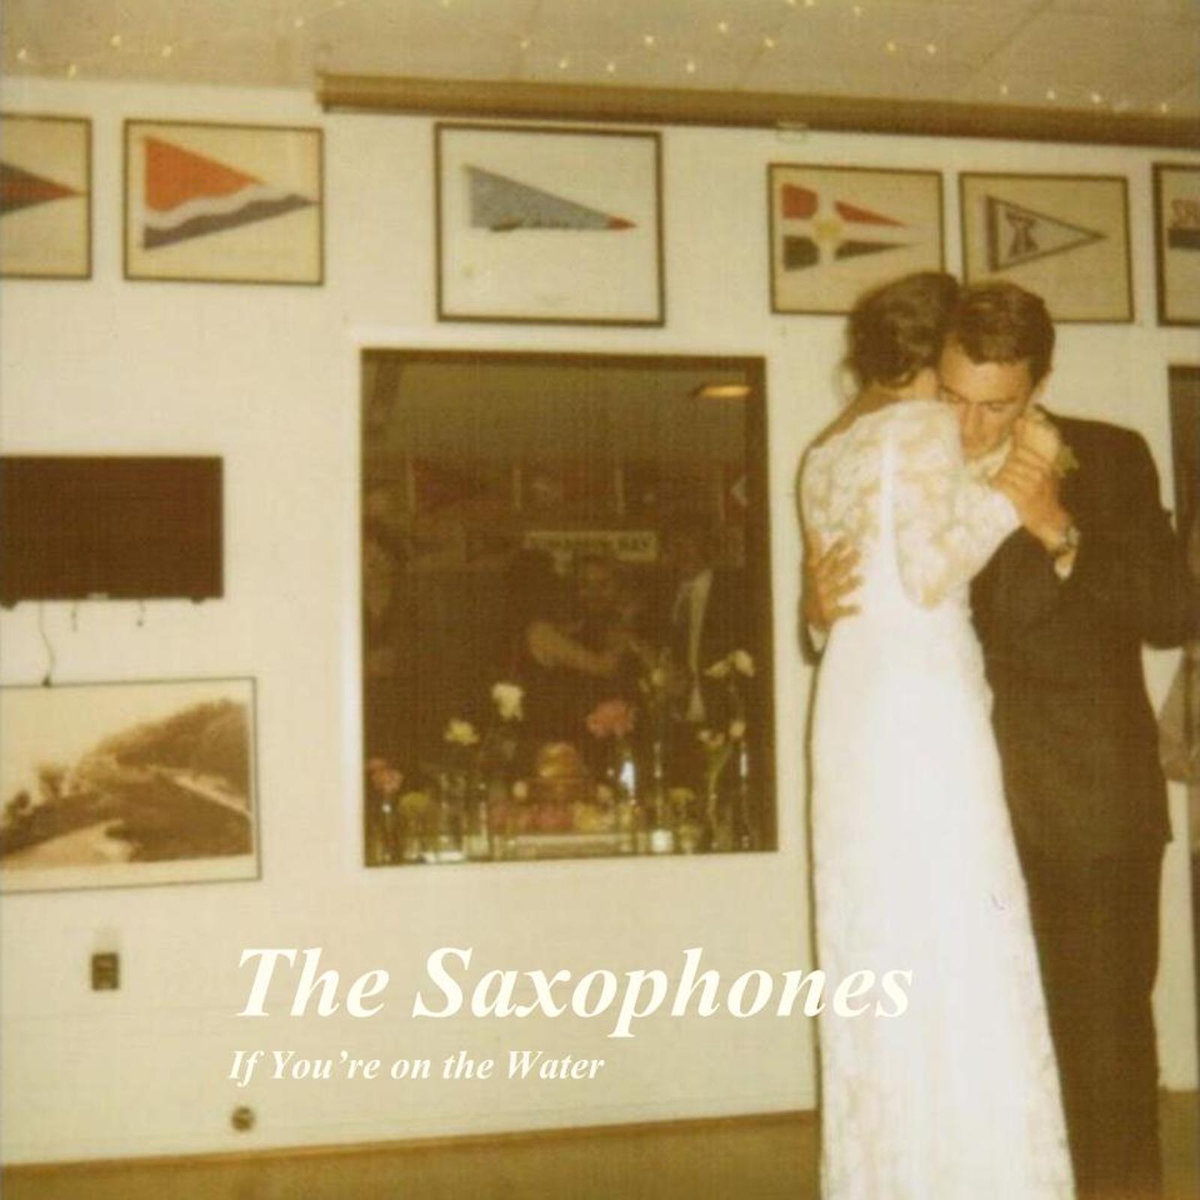 The Saxophones – If You're on the Water